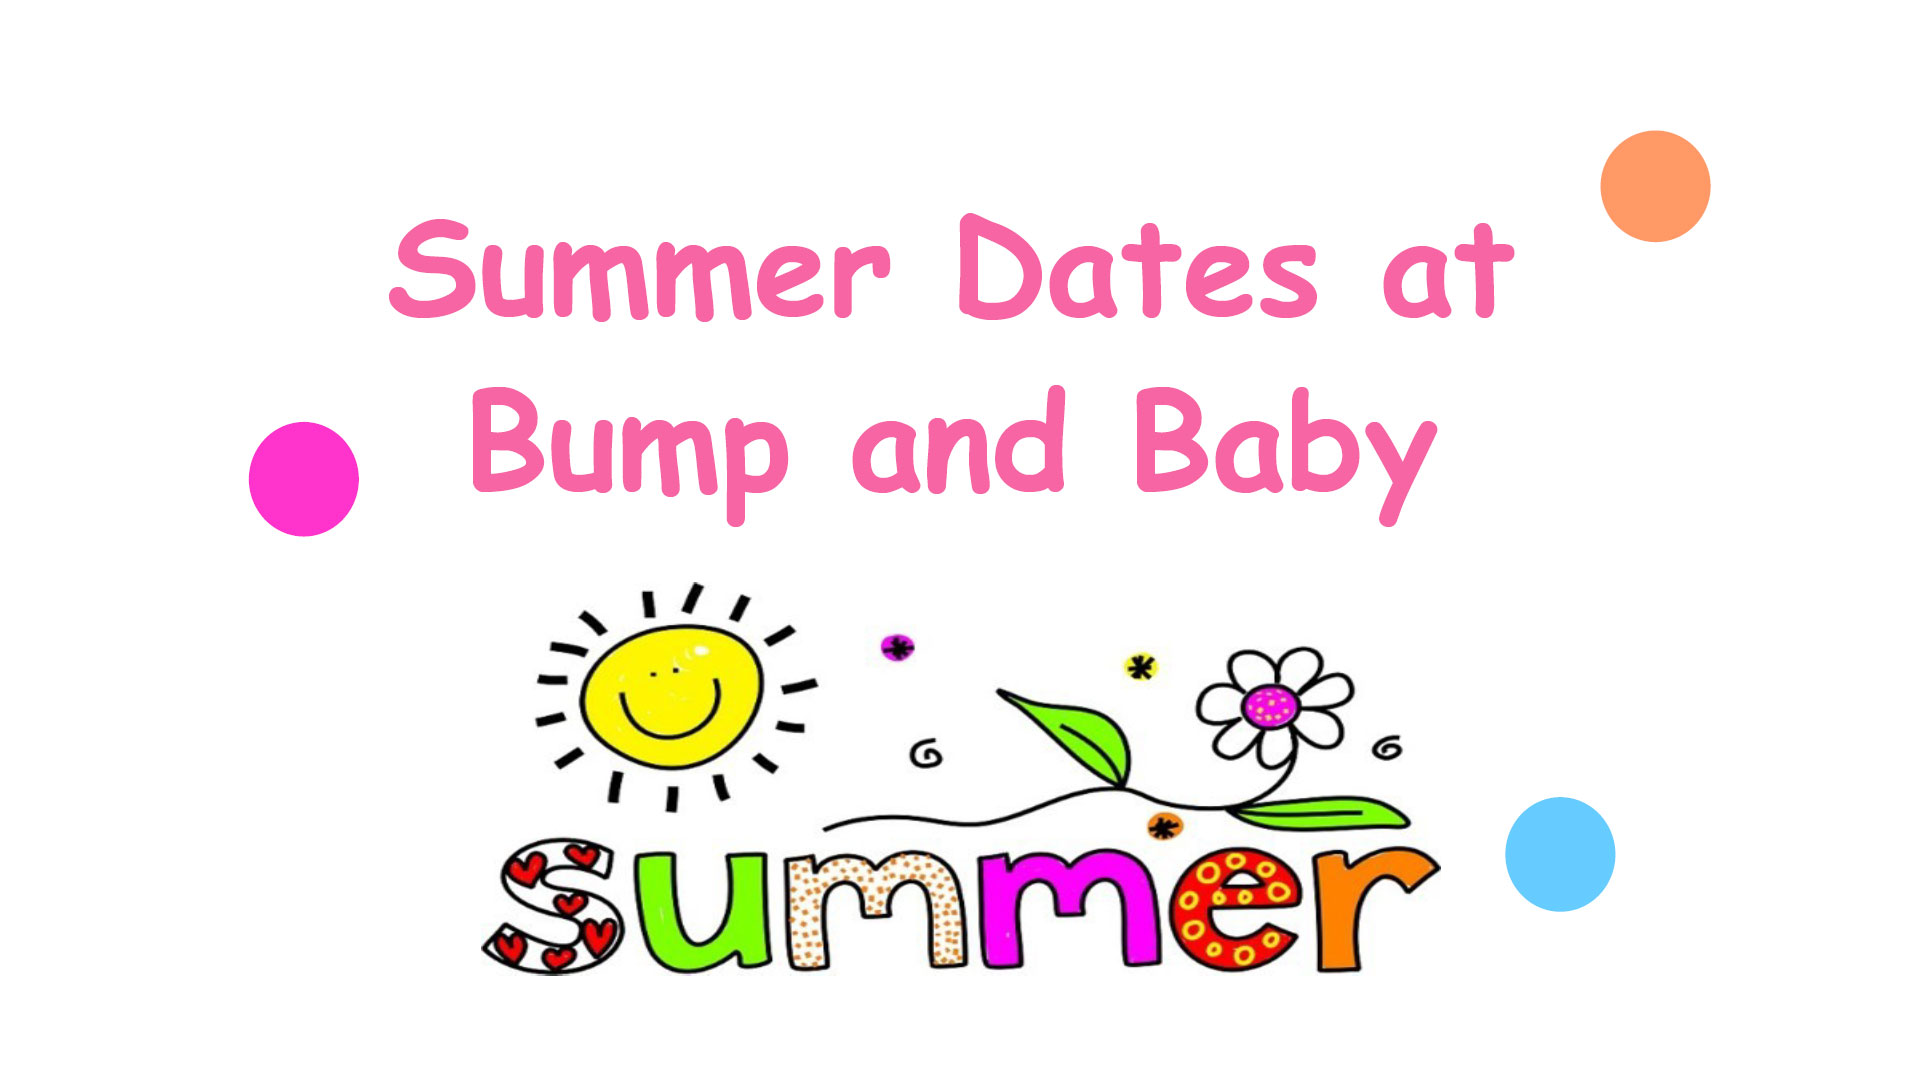 Bump and Baby   Summer Dates